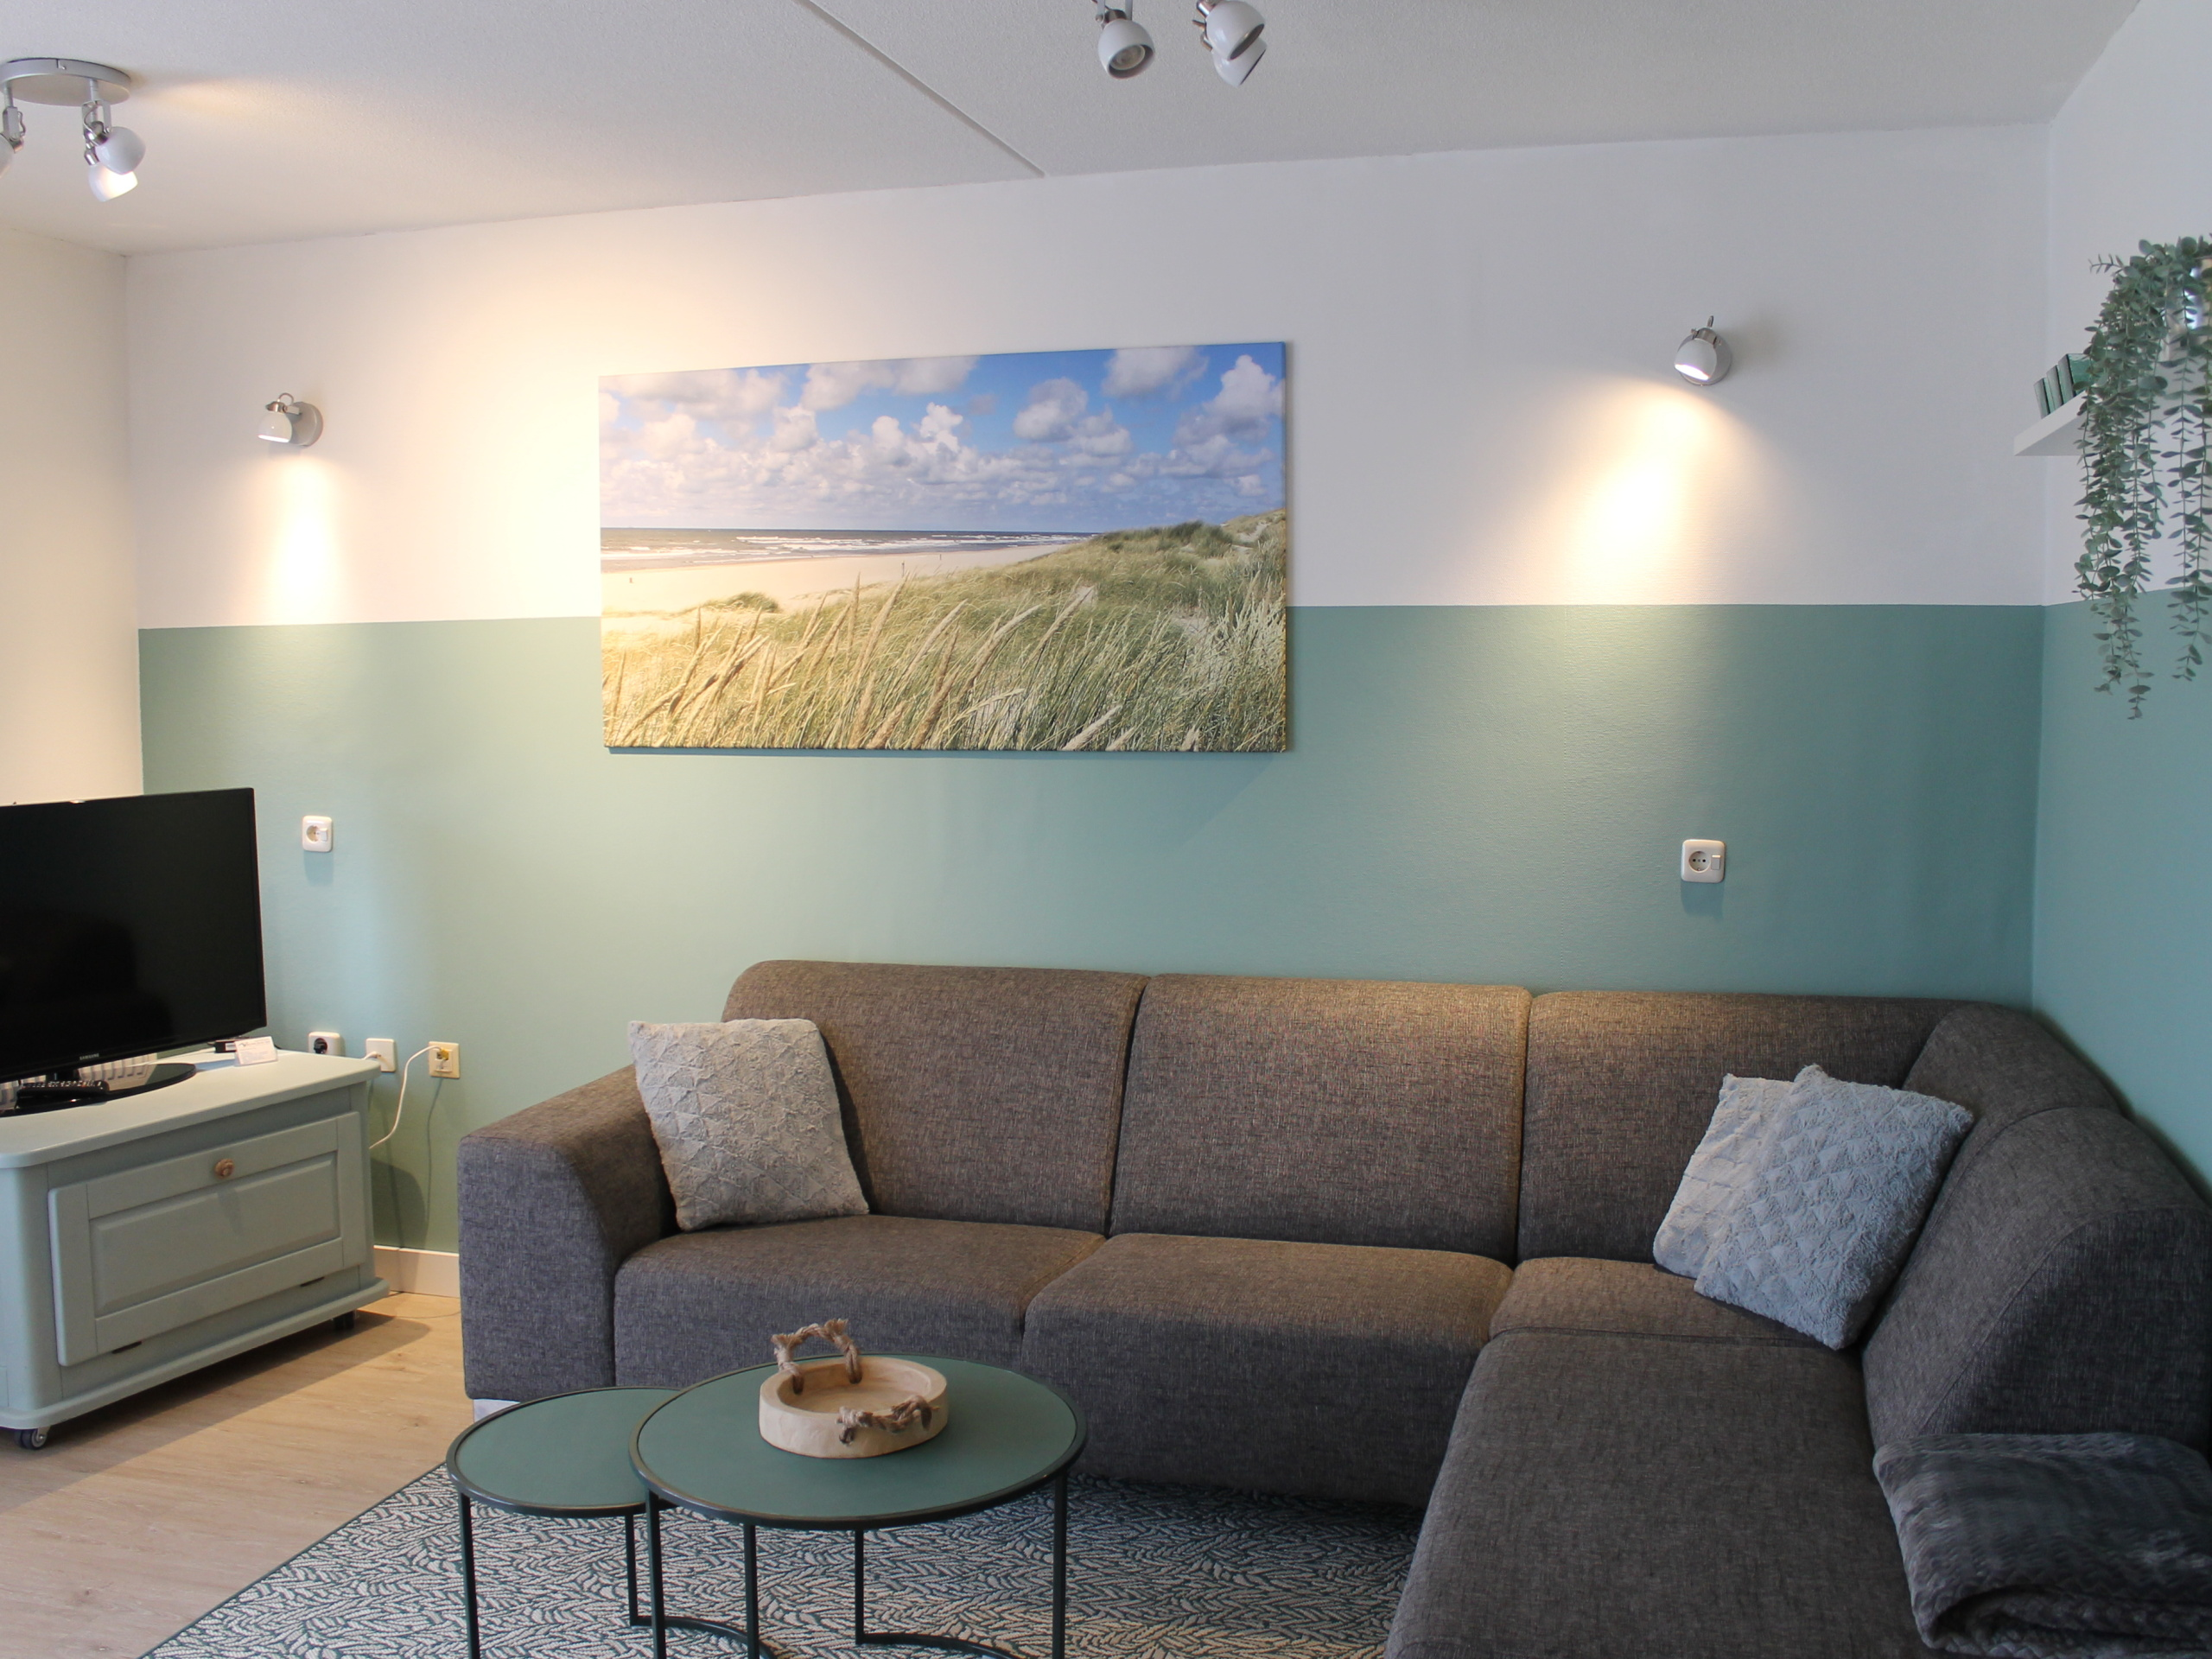 Apartment in De Koog, a 10-minute walk from the sea